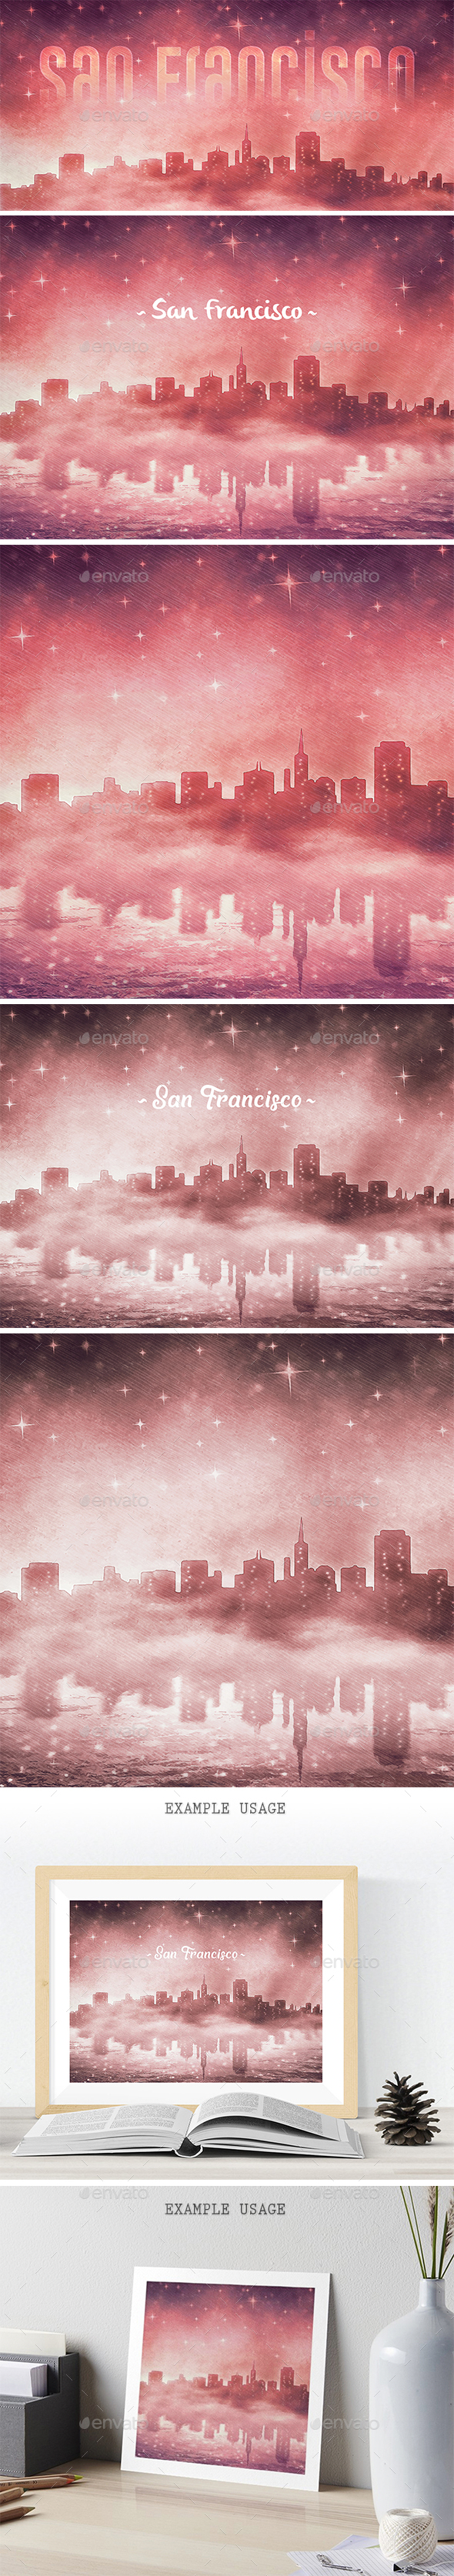 San Francisco Skyline at Night Backgrounds - Urban Backgrounds